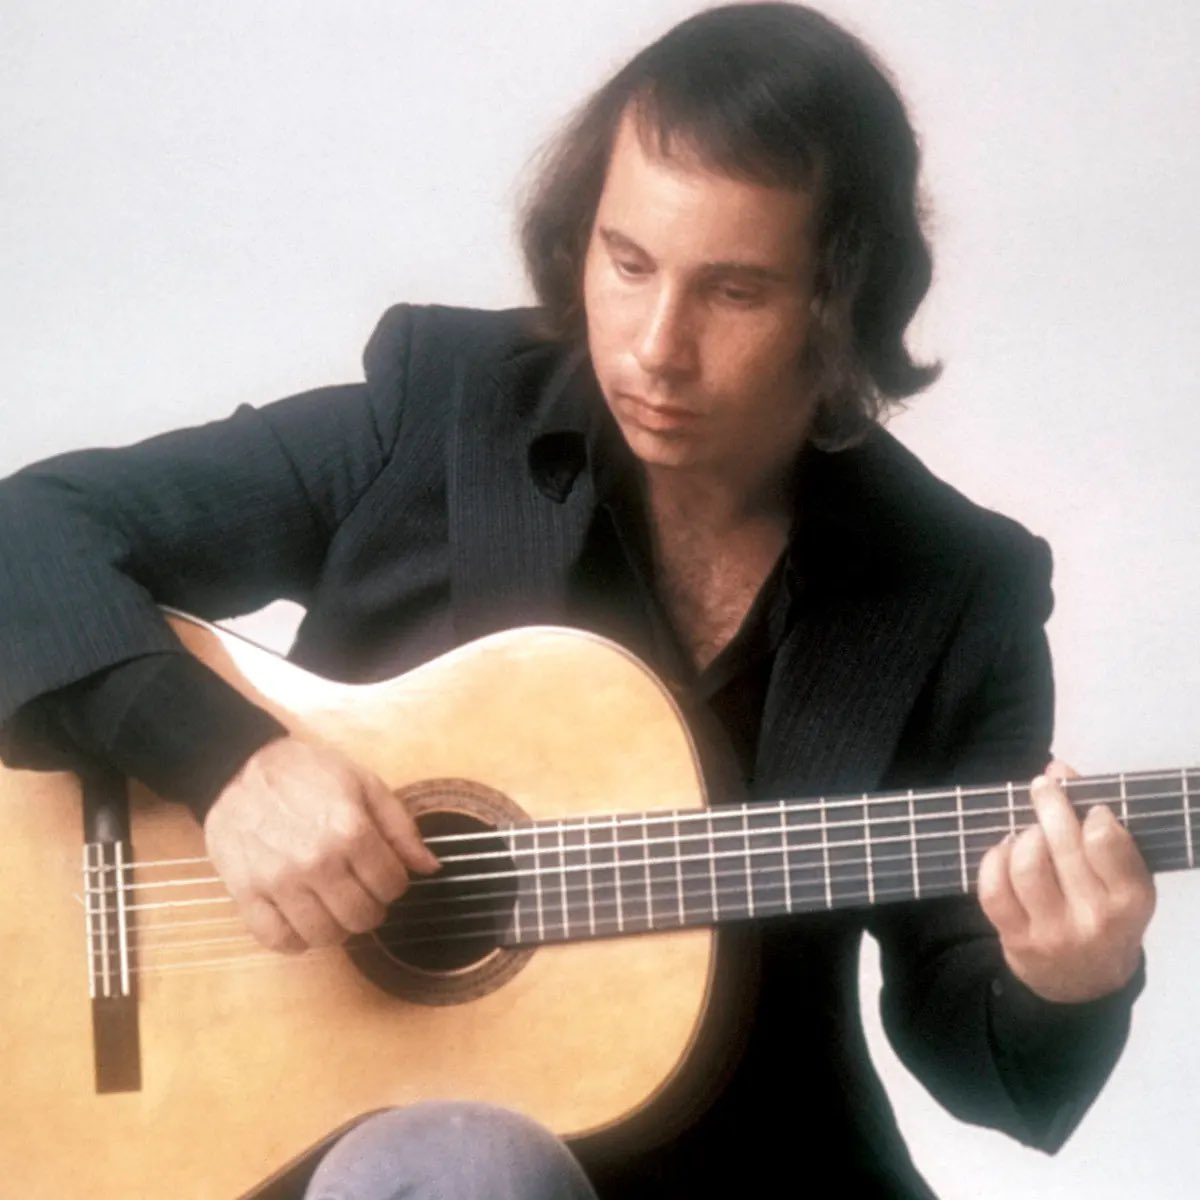 Happy 80th birthday to the great Paul Simon who was born on October 13, 1941.